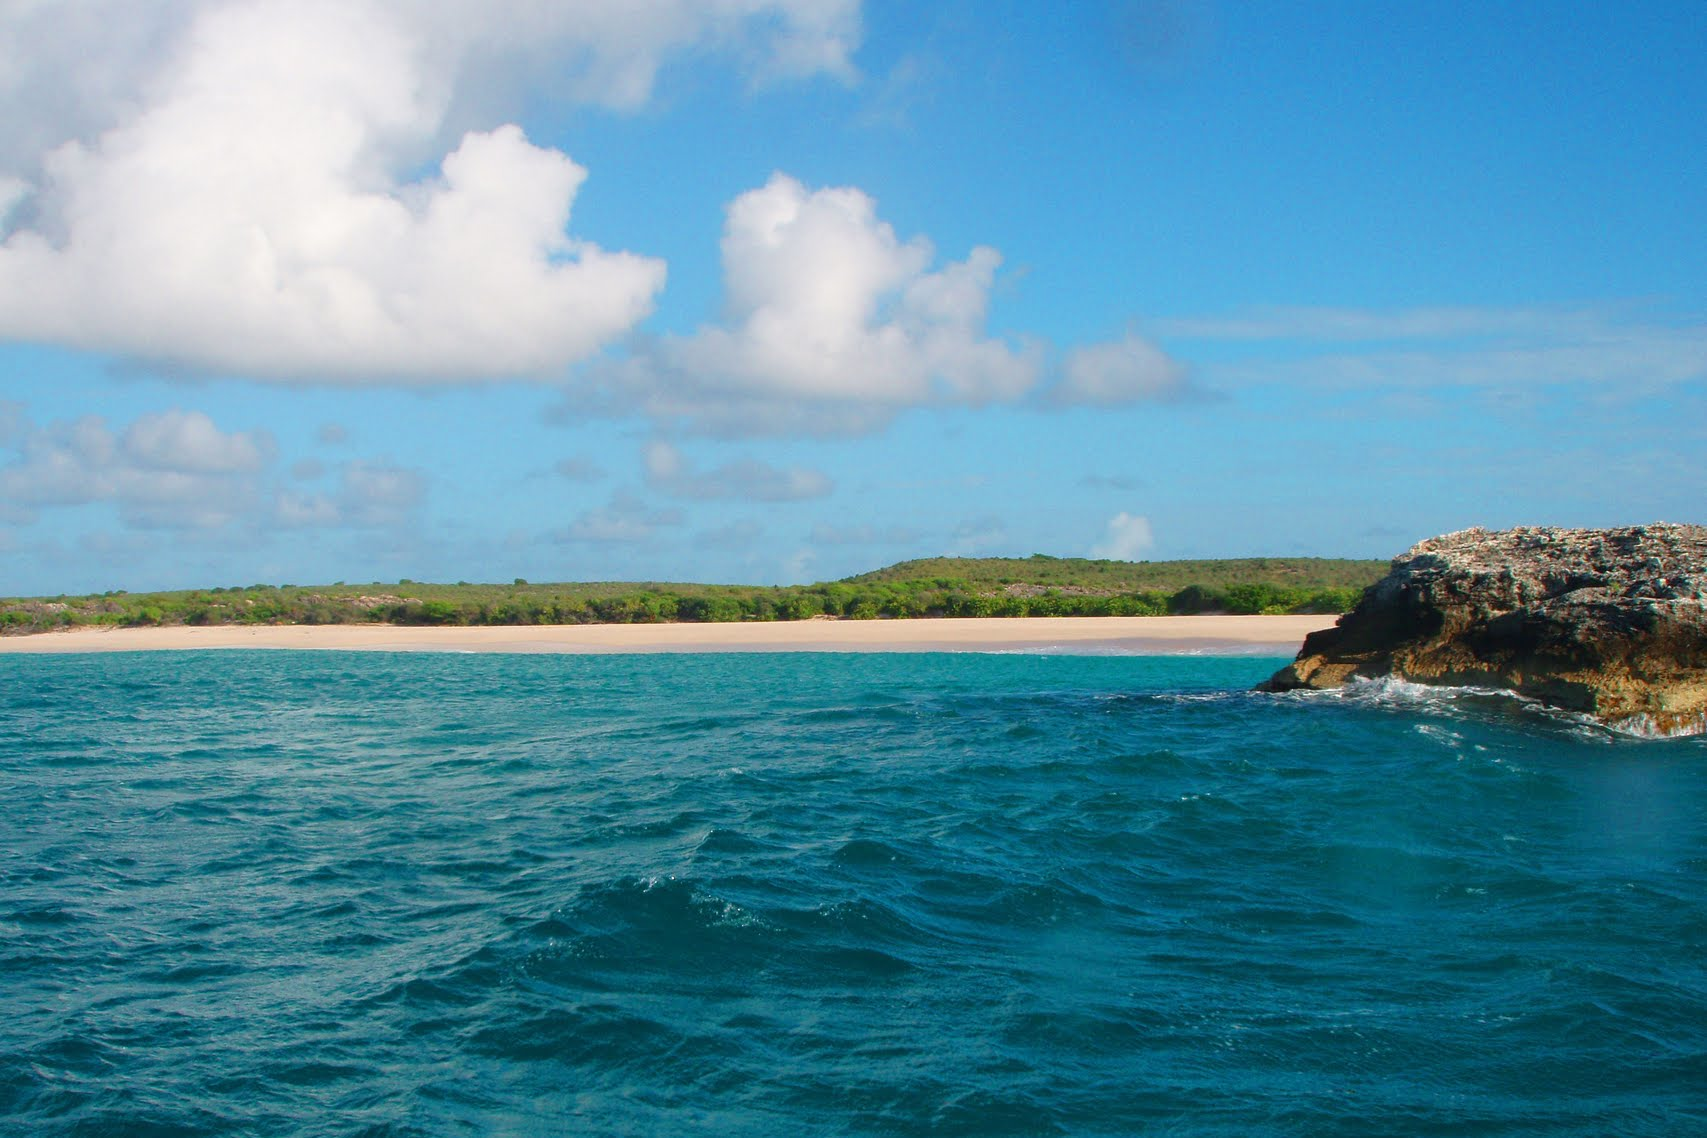 Private island for sale in Anguilla